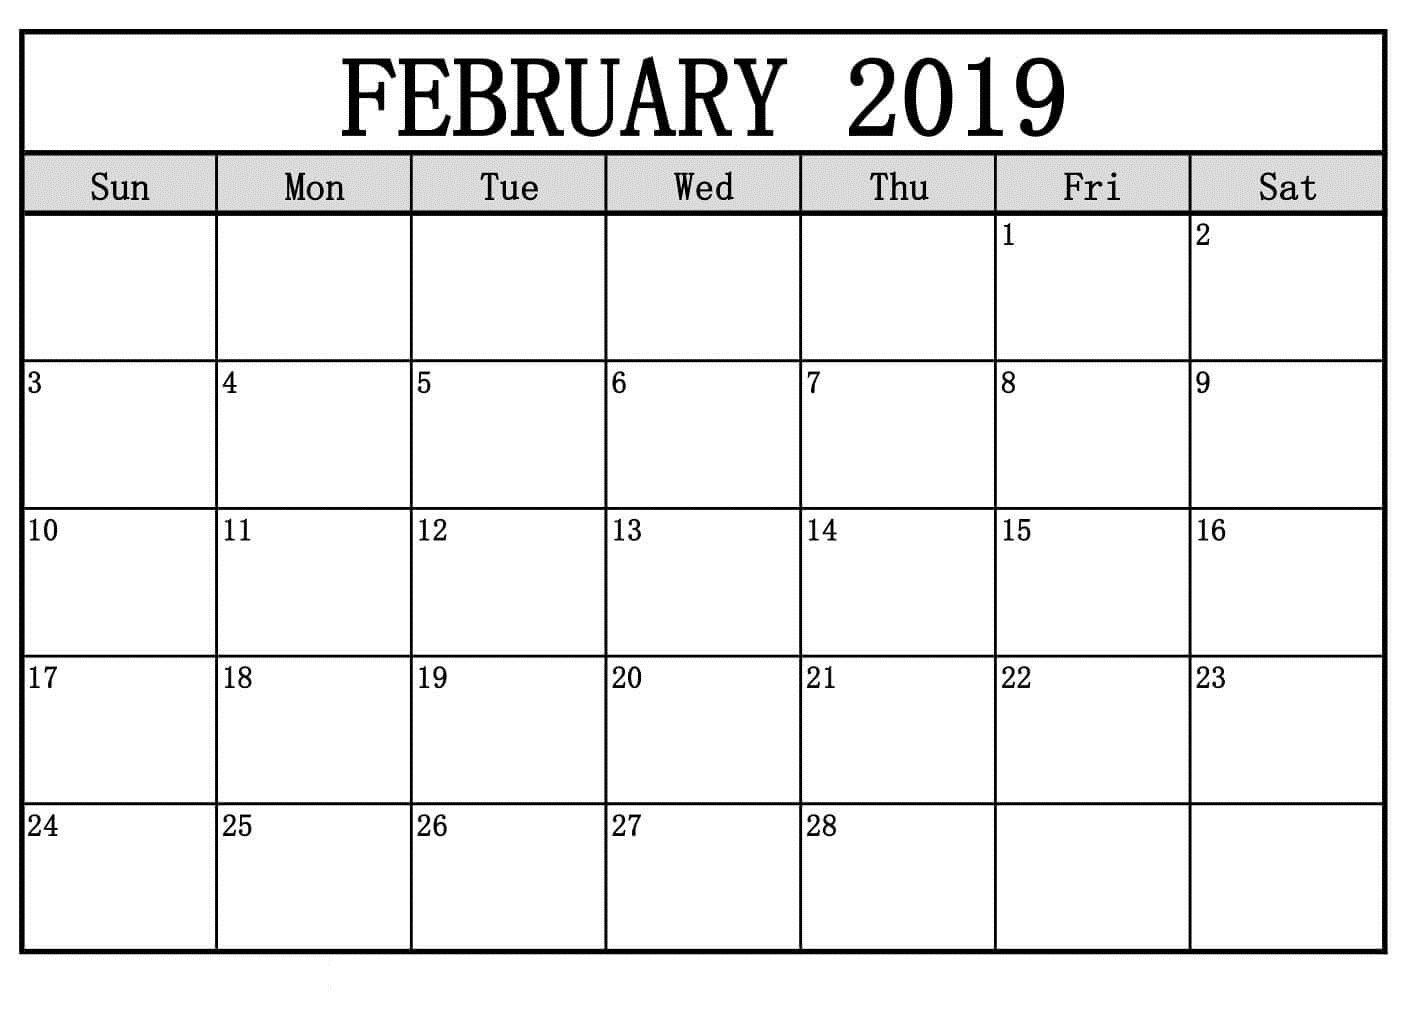 February Calendar 2019 To Do List | February Calendar 2019 Manage Calendar 2019 List